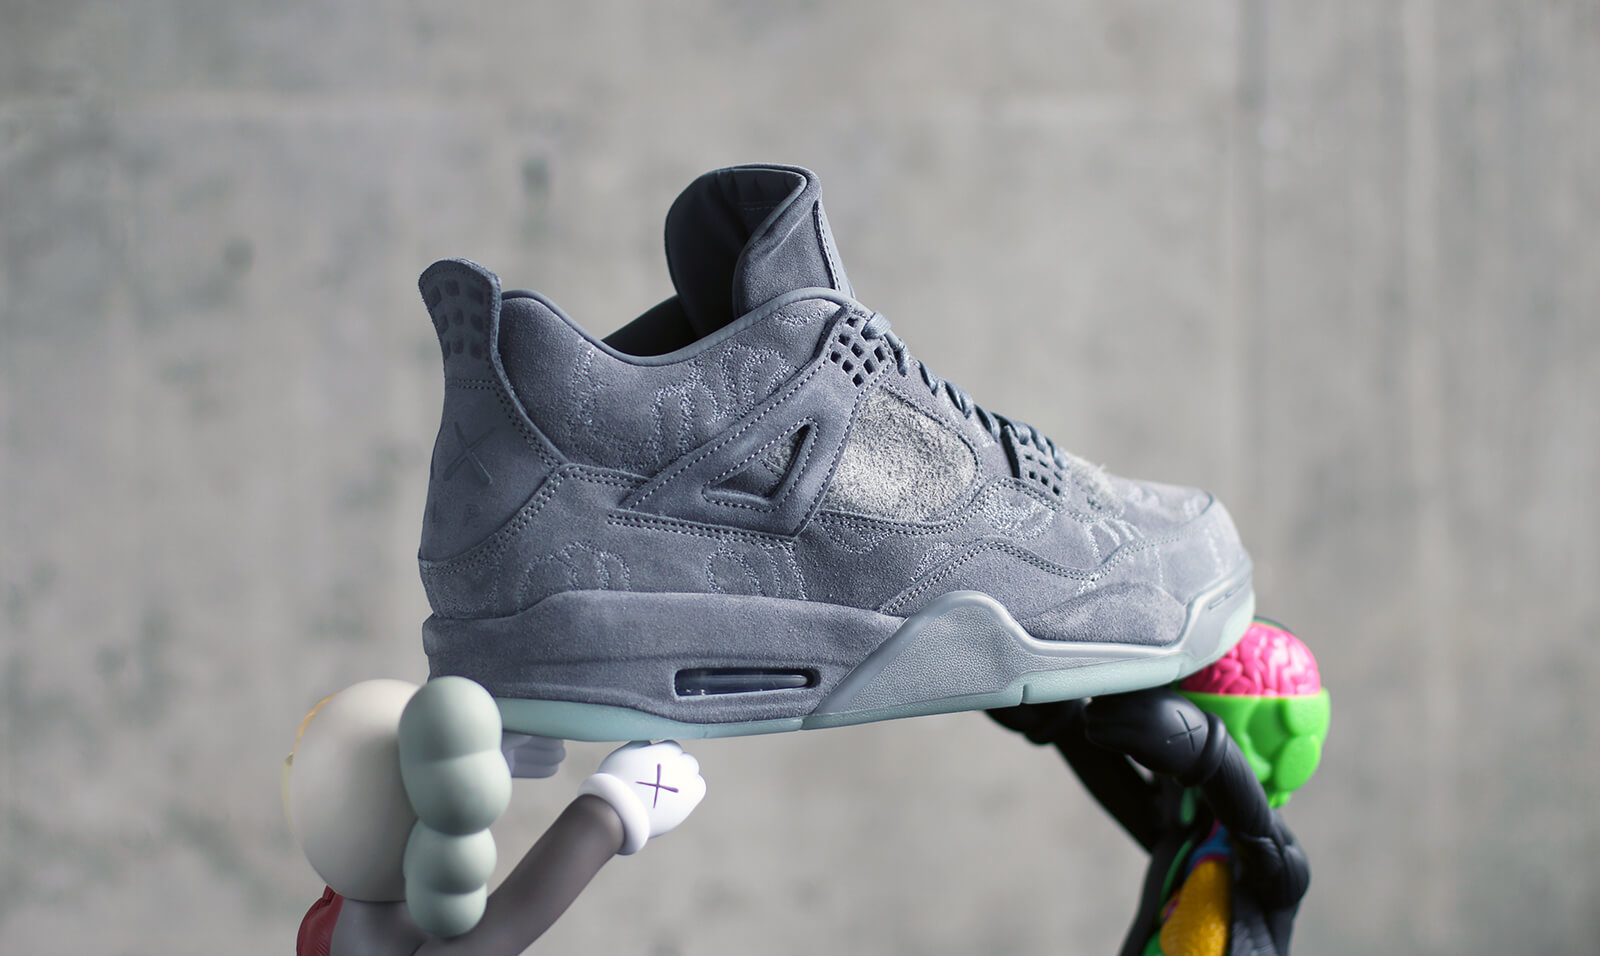 Air Jordan 4 Retro x Kaws